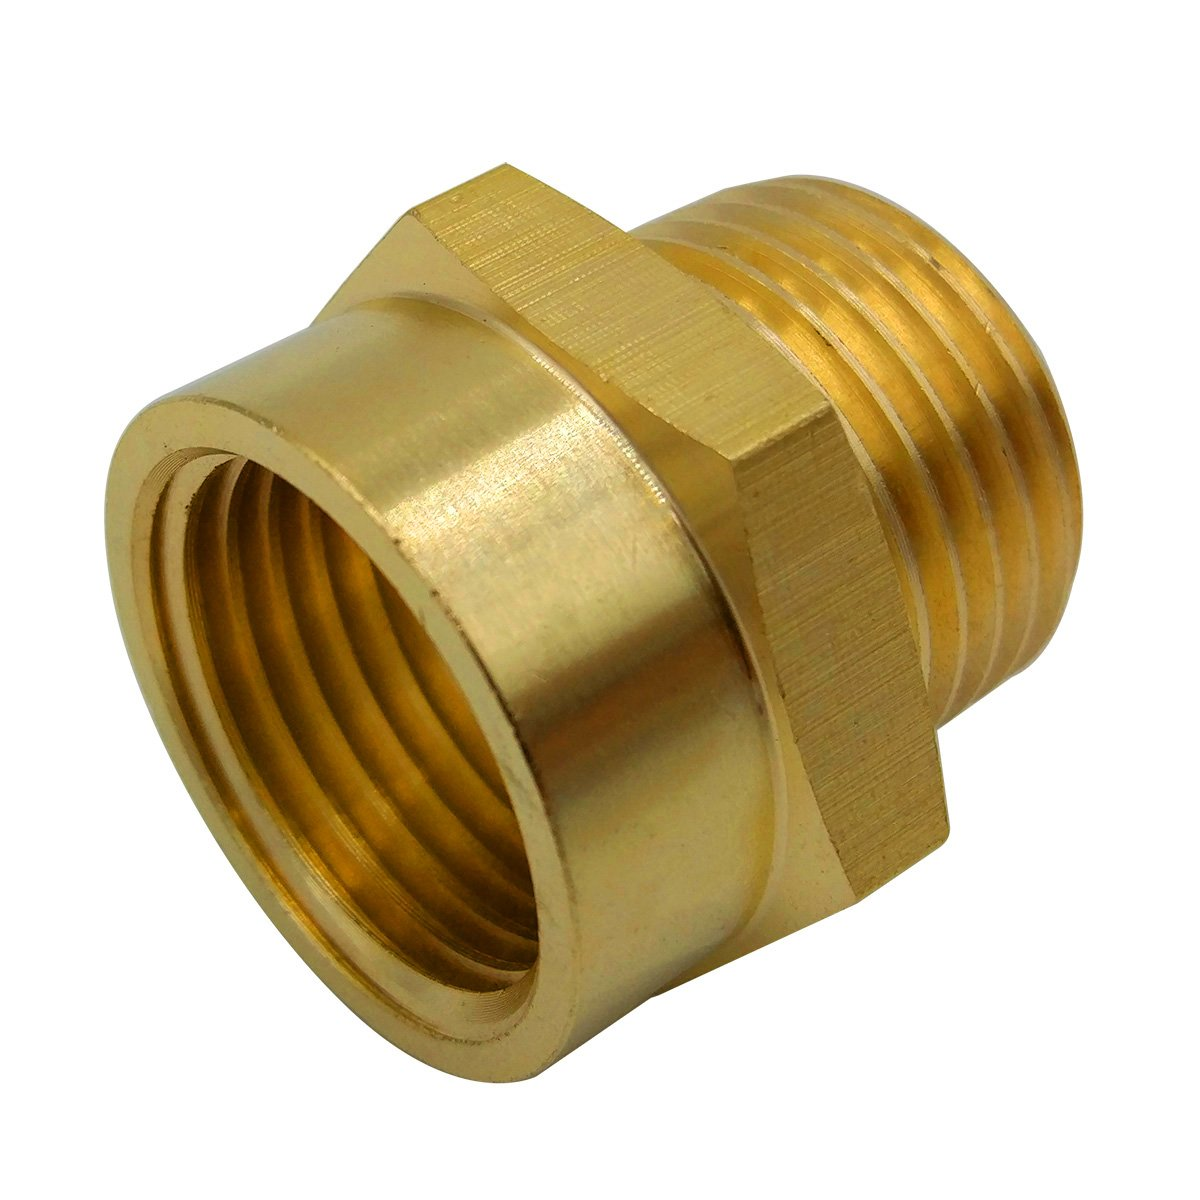 BOWSEN Pipe Fitting Adapter Female G1/2'' Thread to Male NPT1/2'' Thread Lead Free (1-Piece)